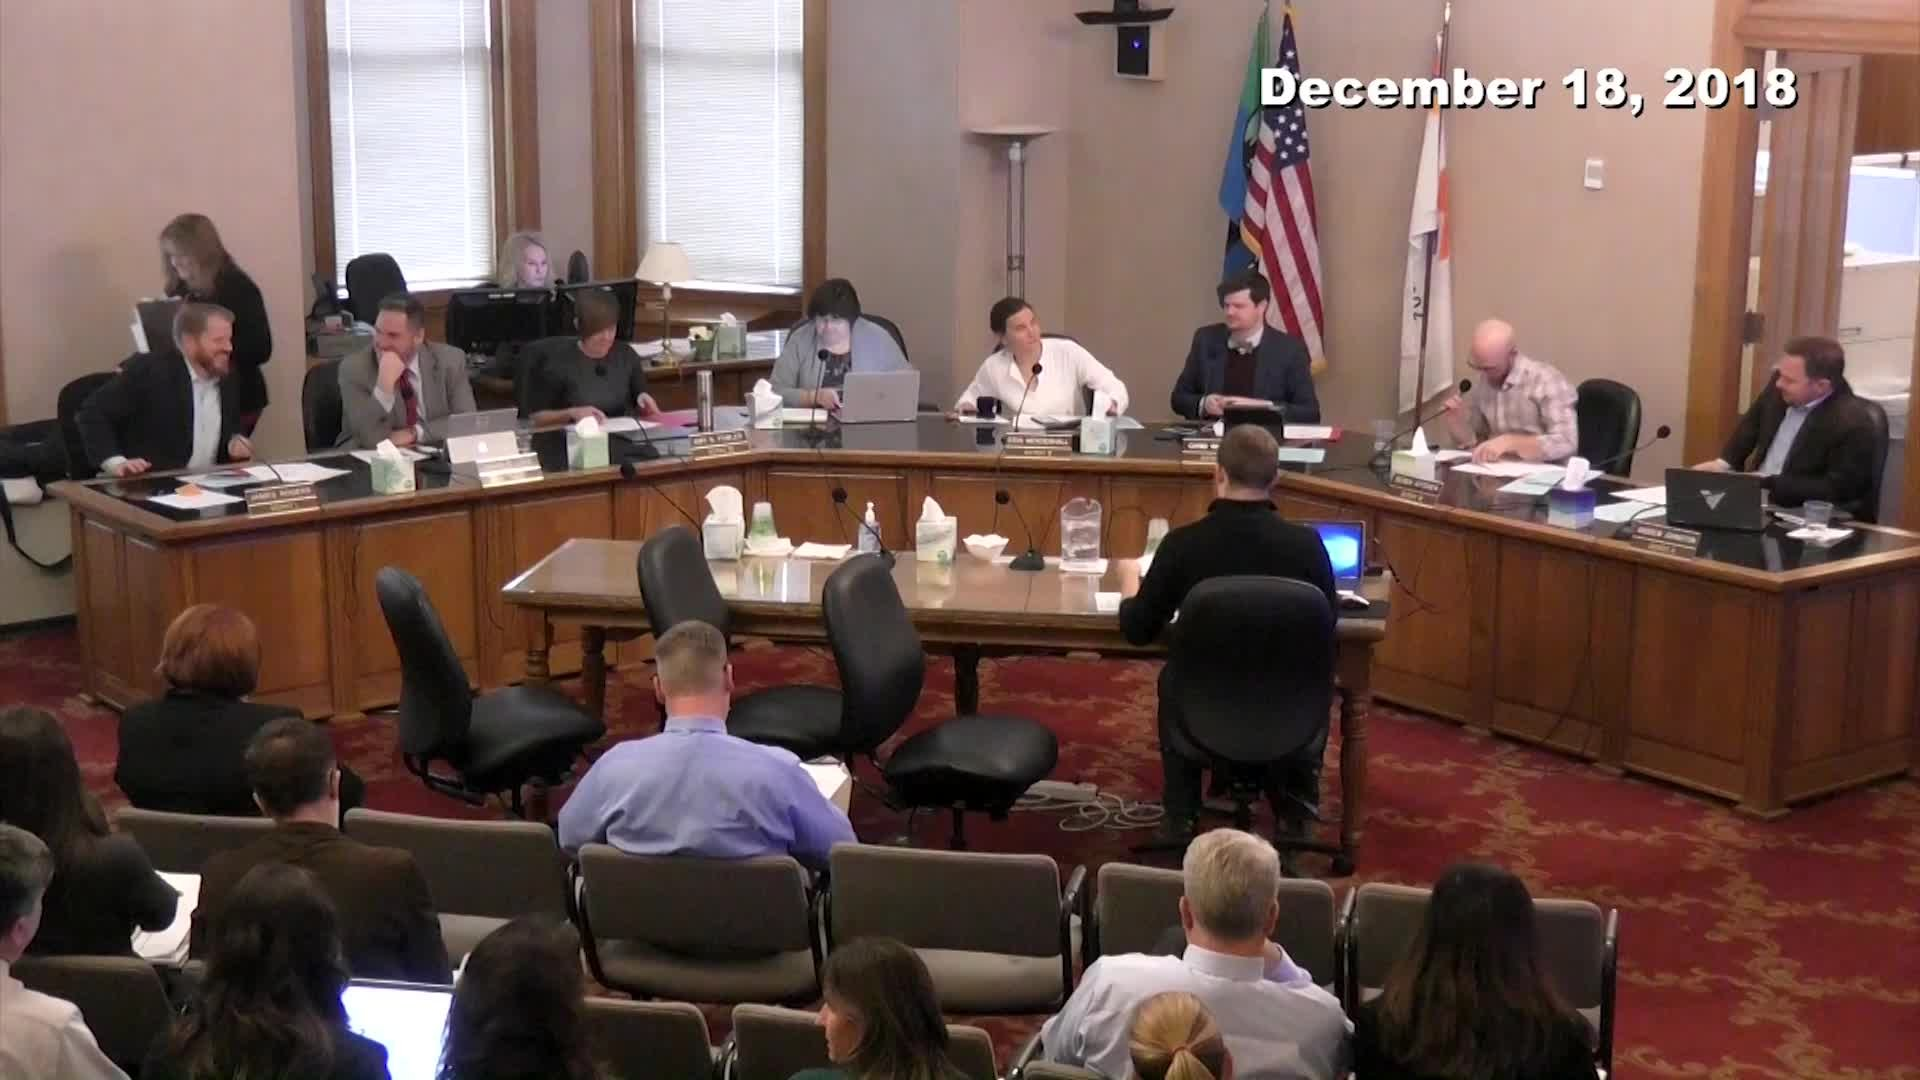 Redevelopment Agency (RDA) Meeting - 12/18/2018